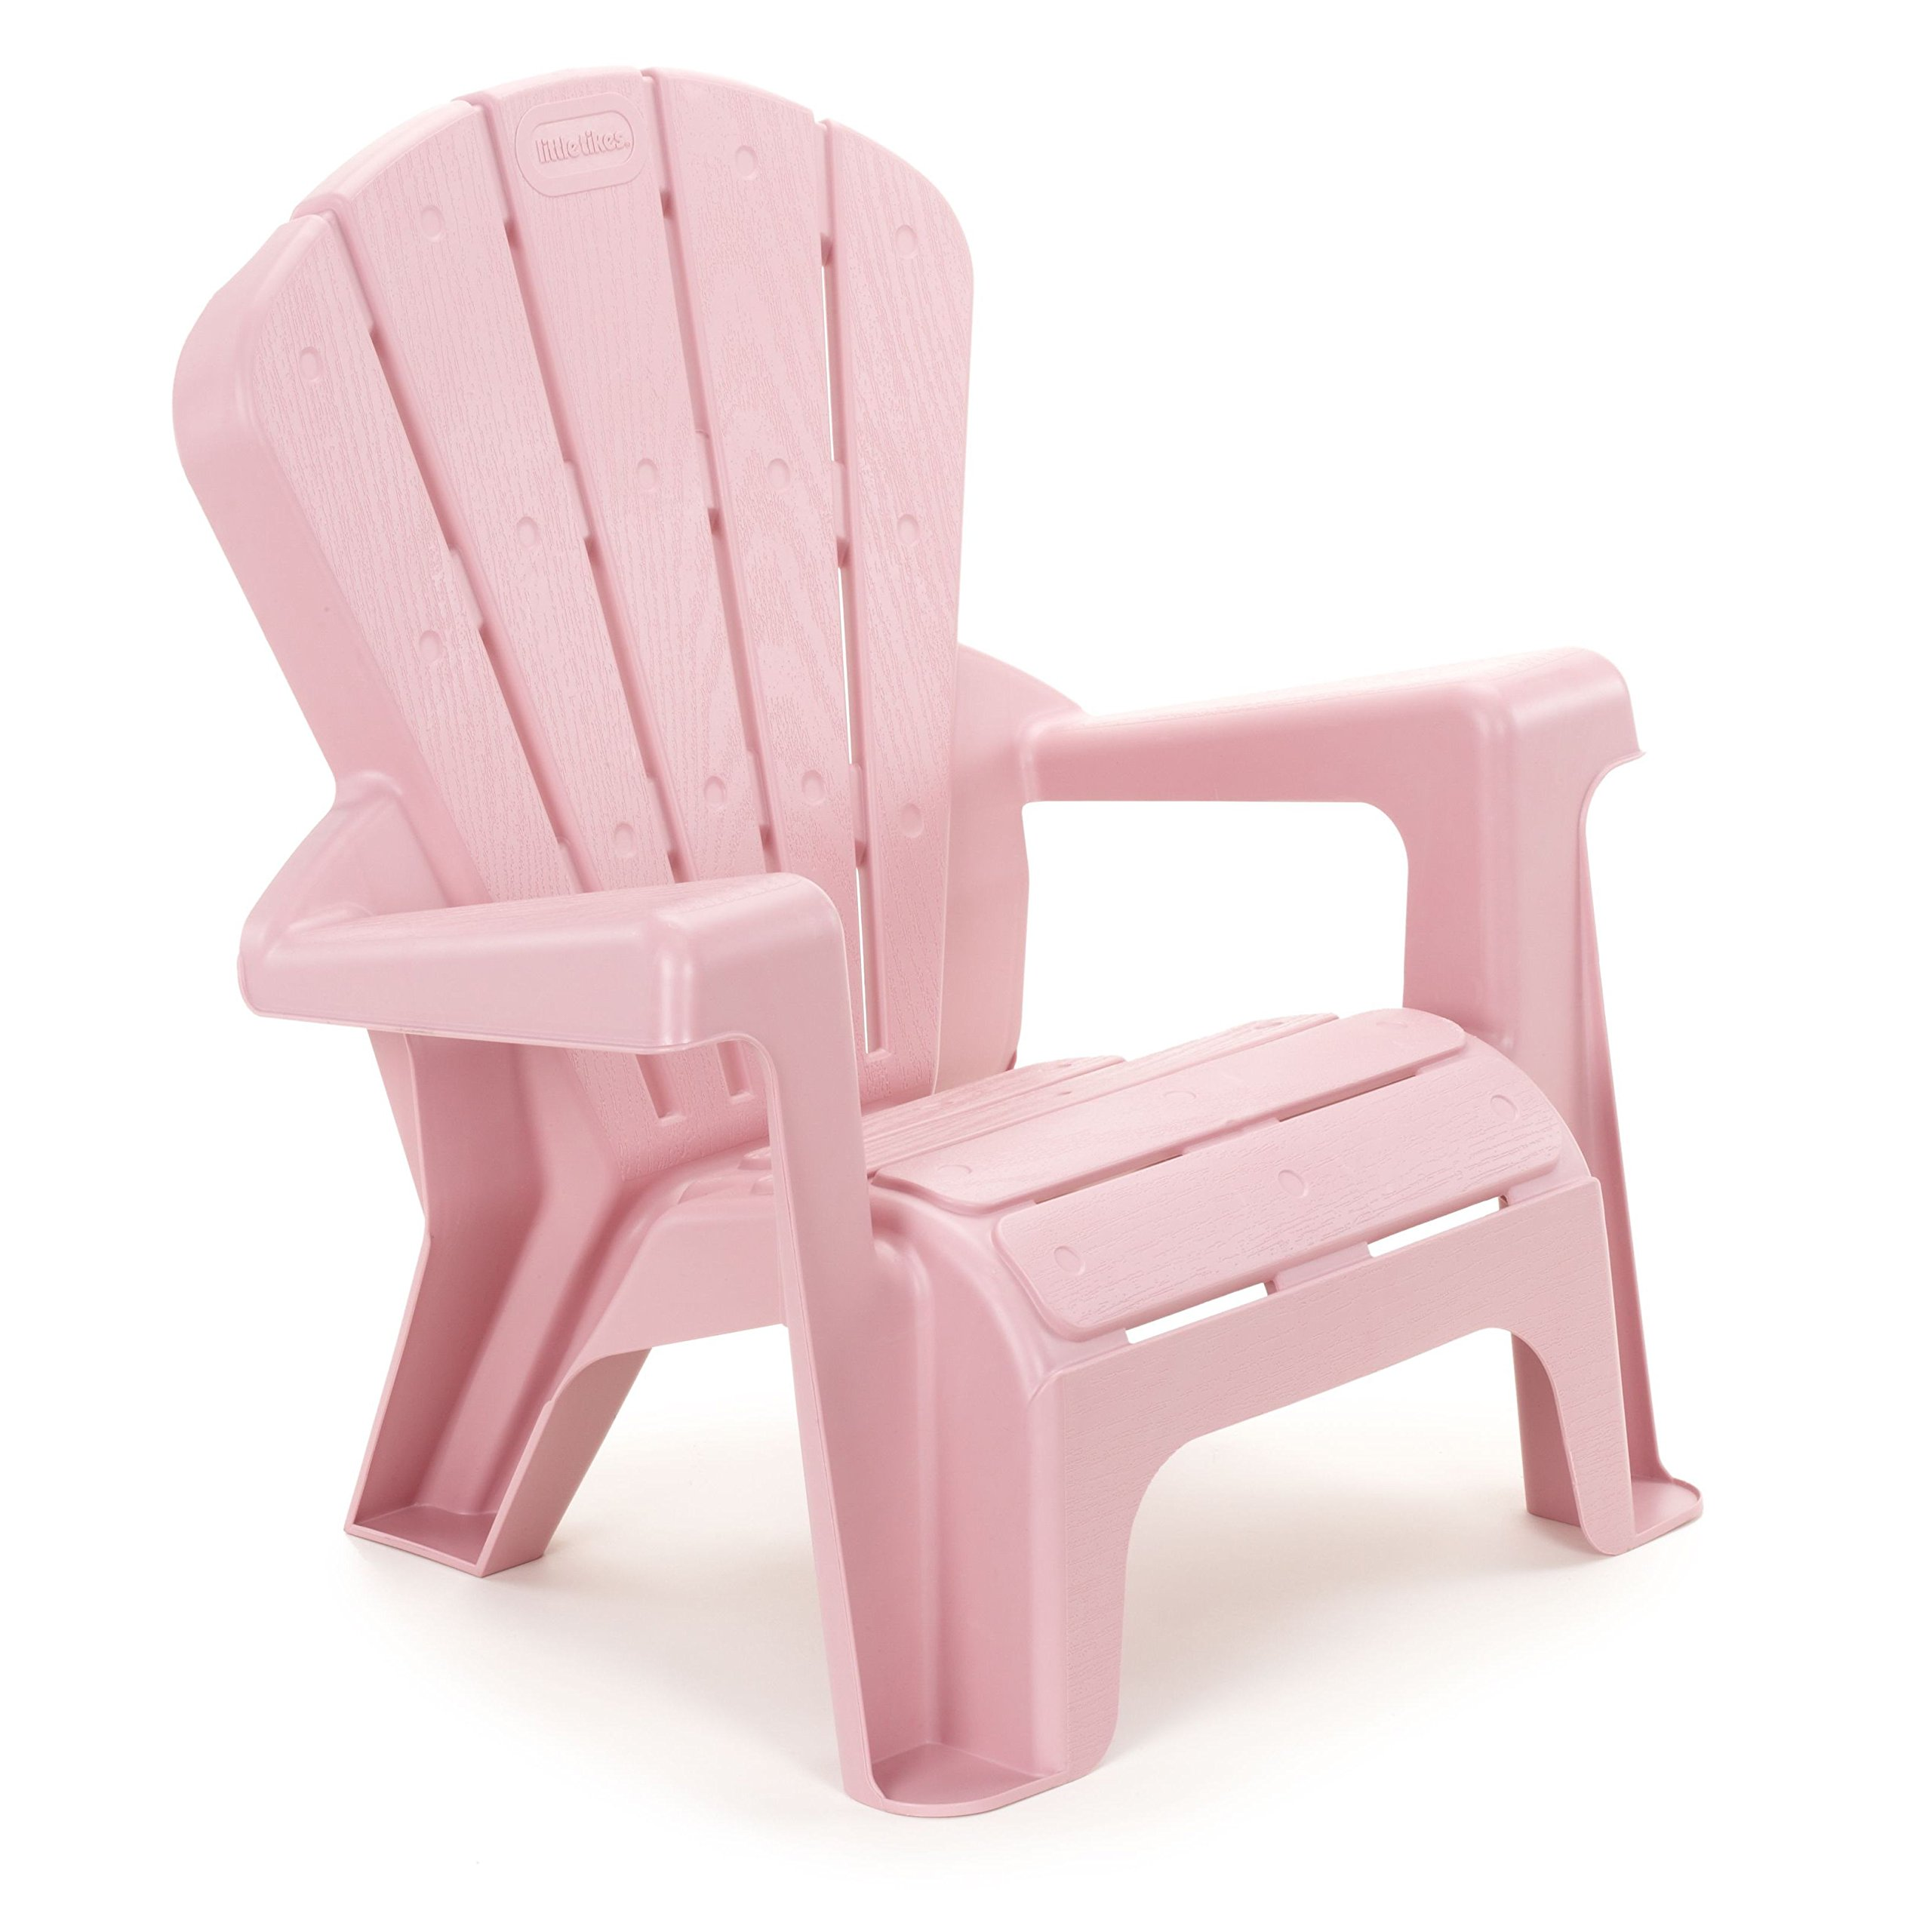 Cheap Best Plastic Adirondack Chairs, Find Best Plastic Adirondack Chairs  Deals On Line At Alibaba.com